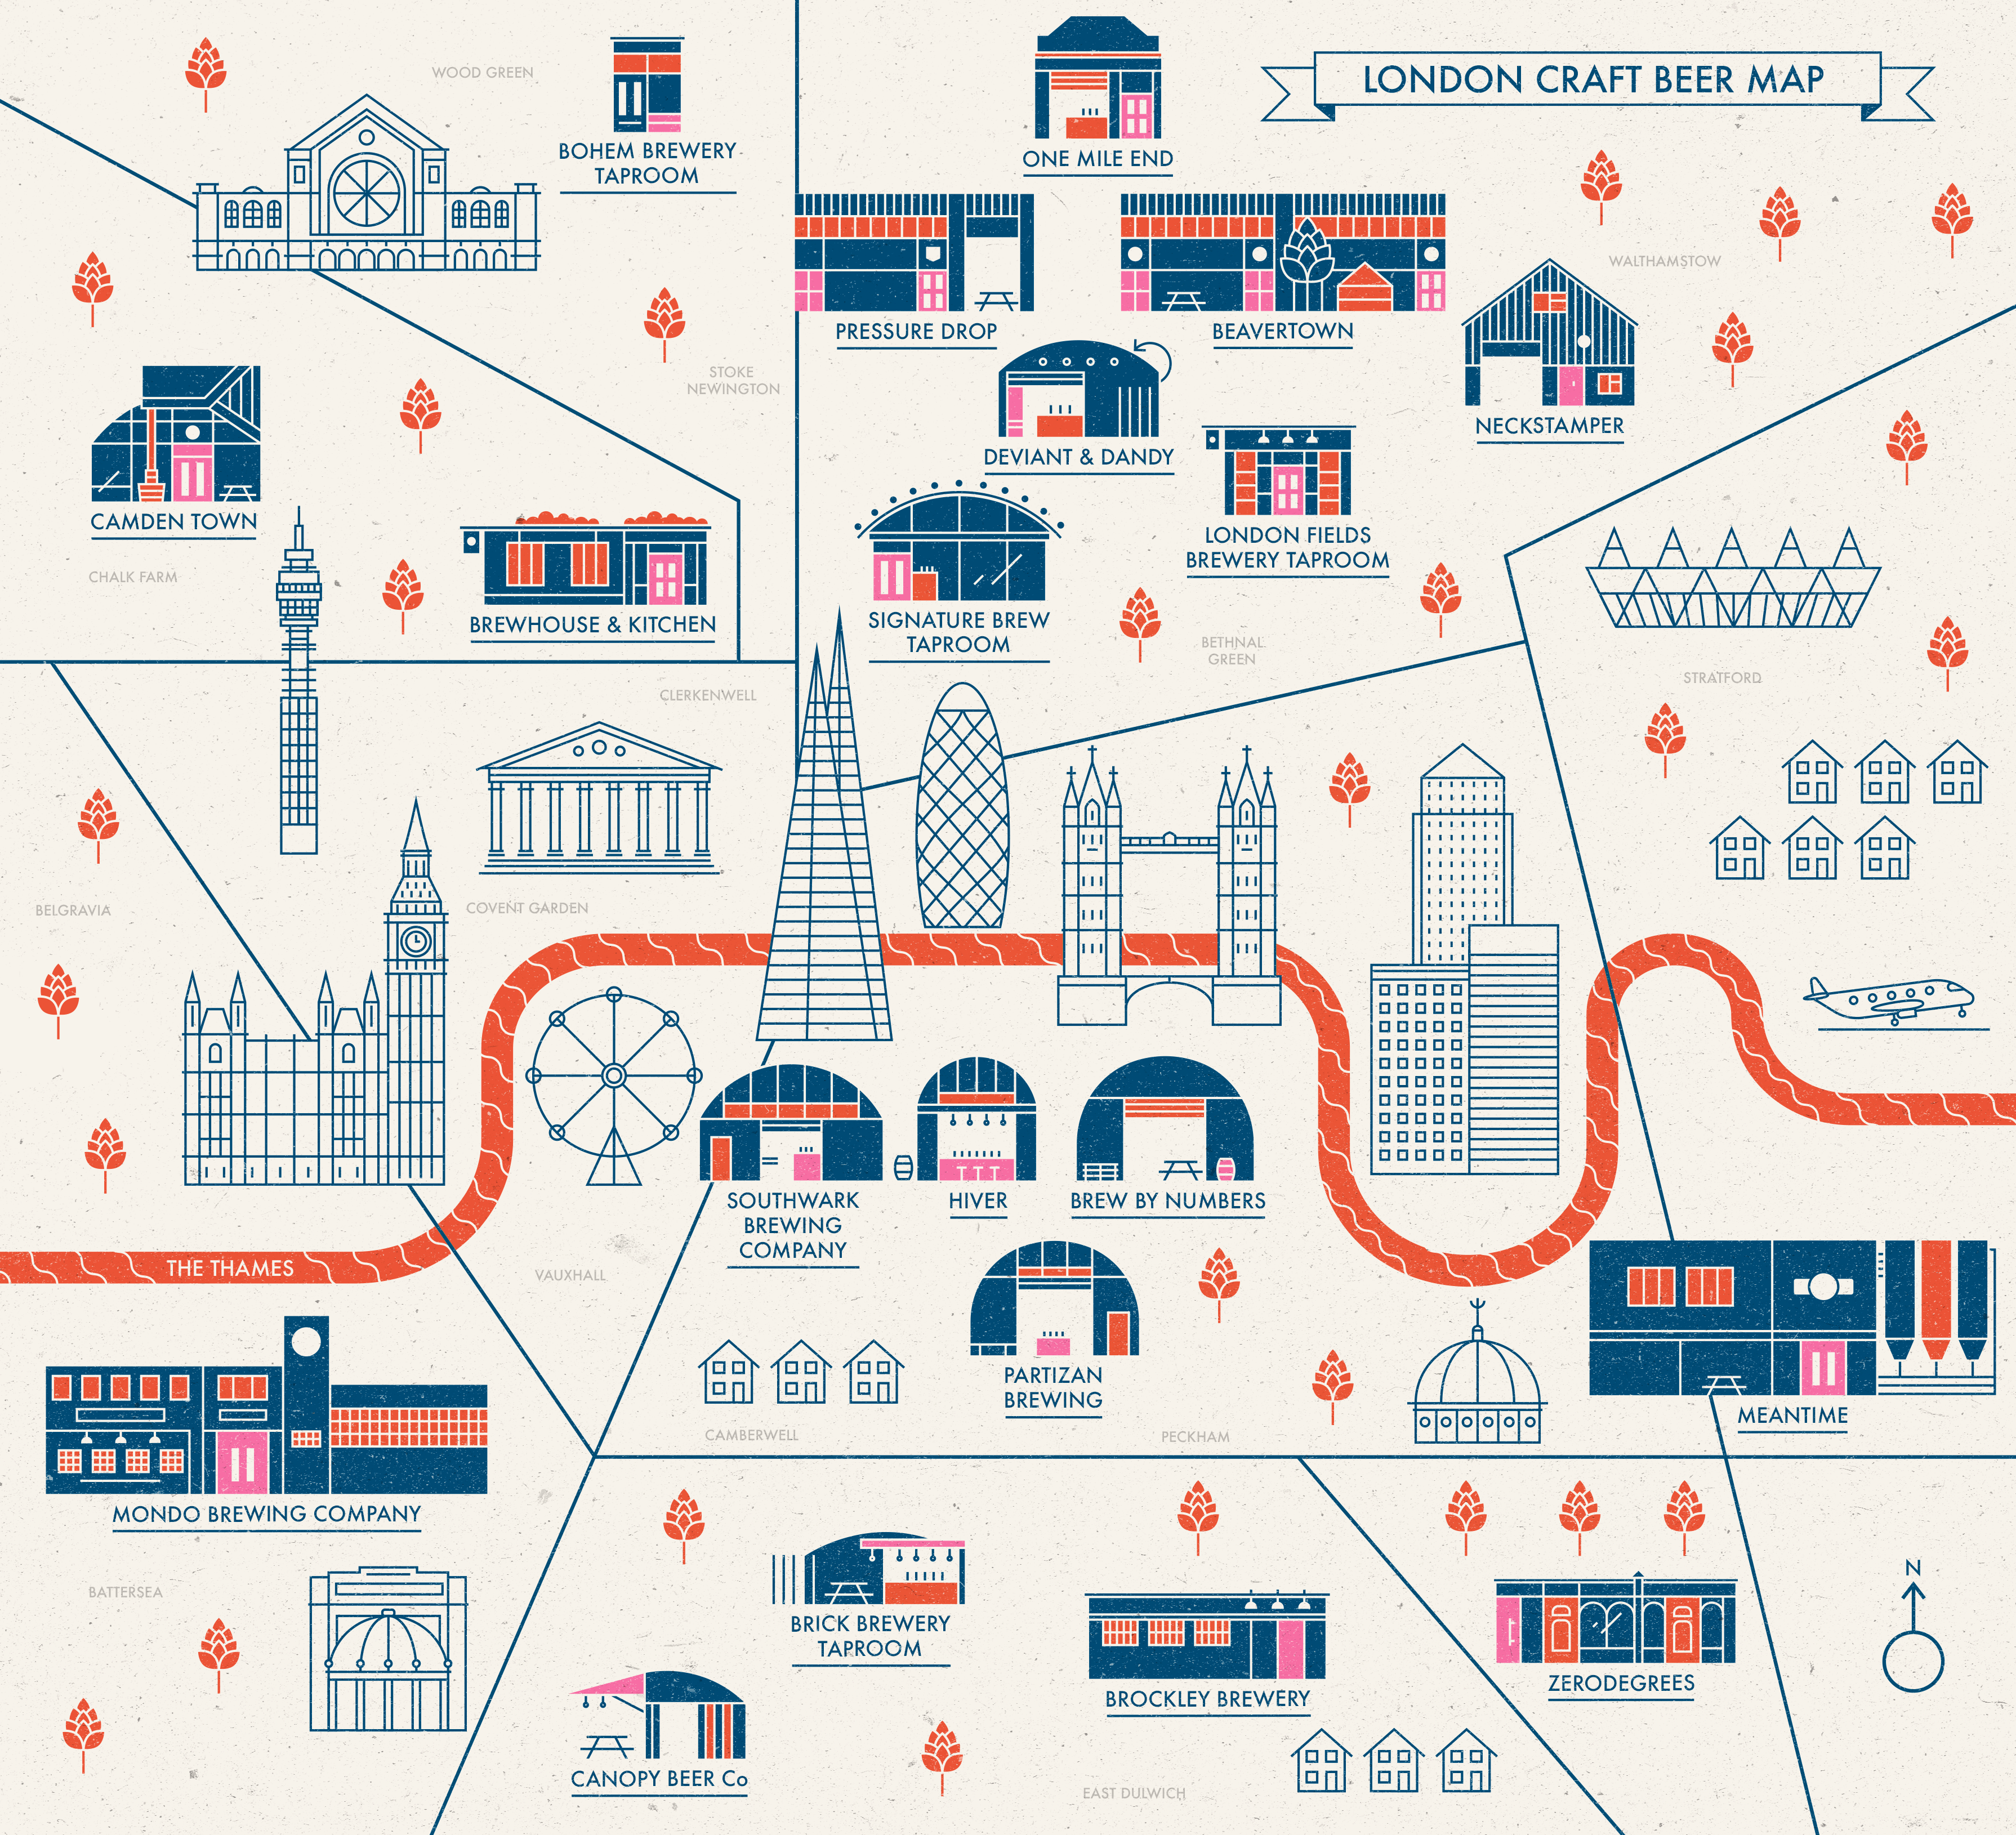 London Map Images.London Craft Beer Map Activity Superstore